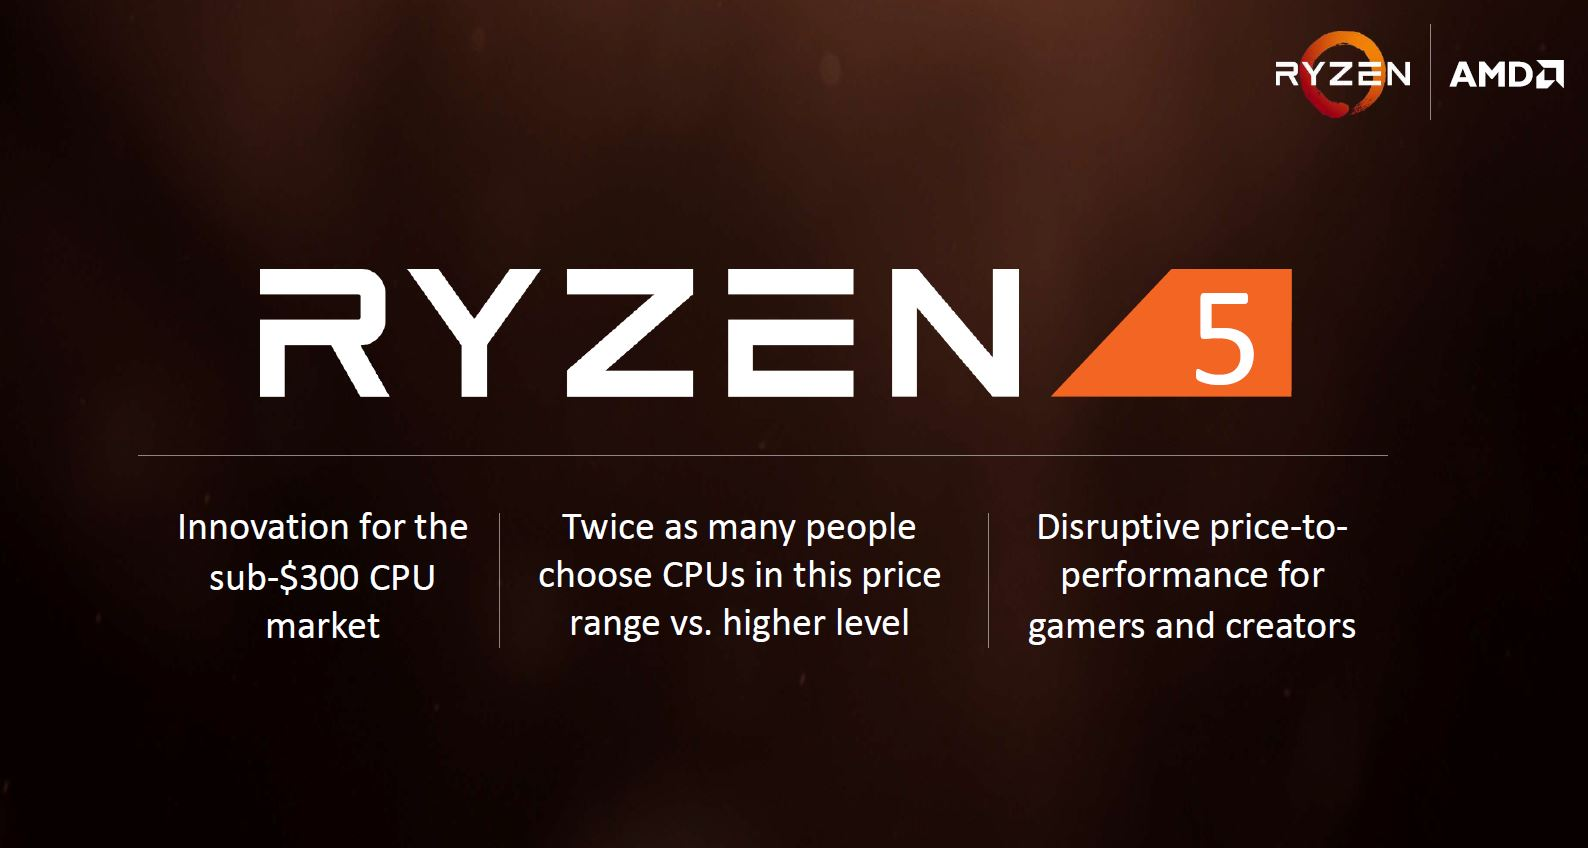 AMD Ryzen 5 Positioning